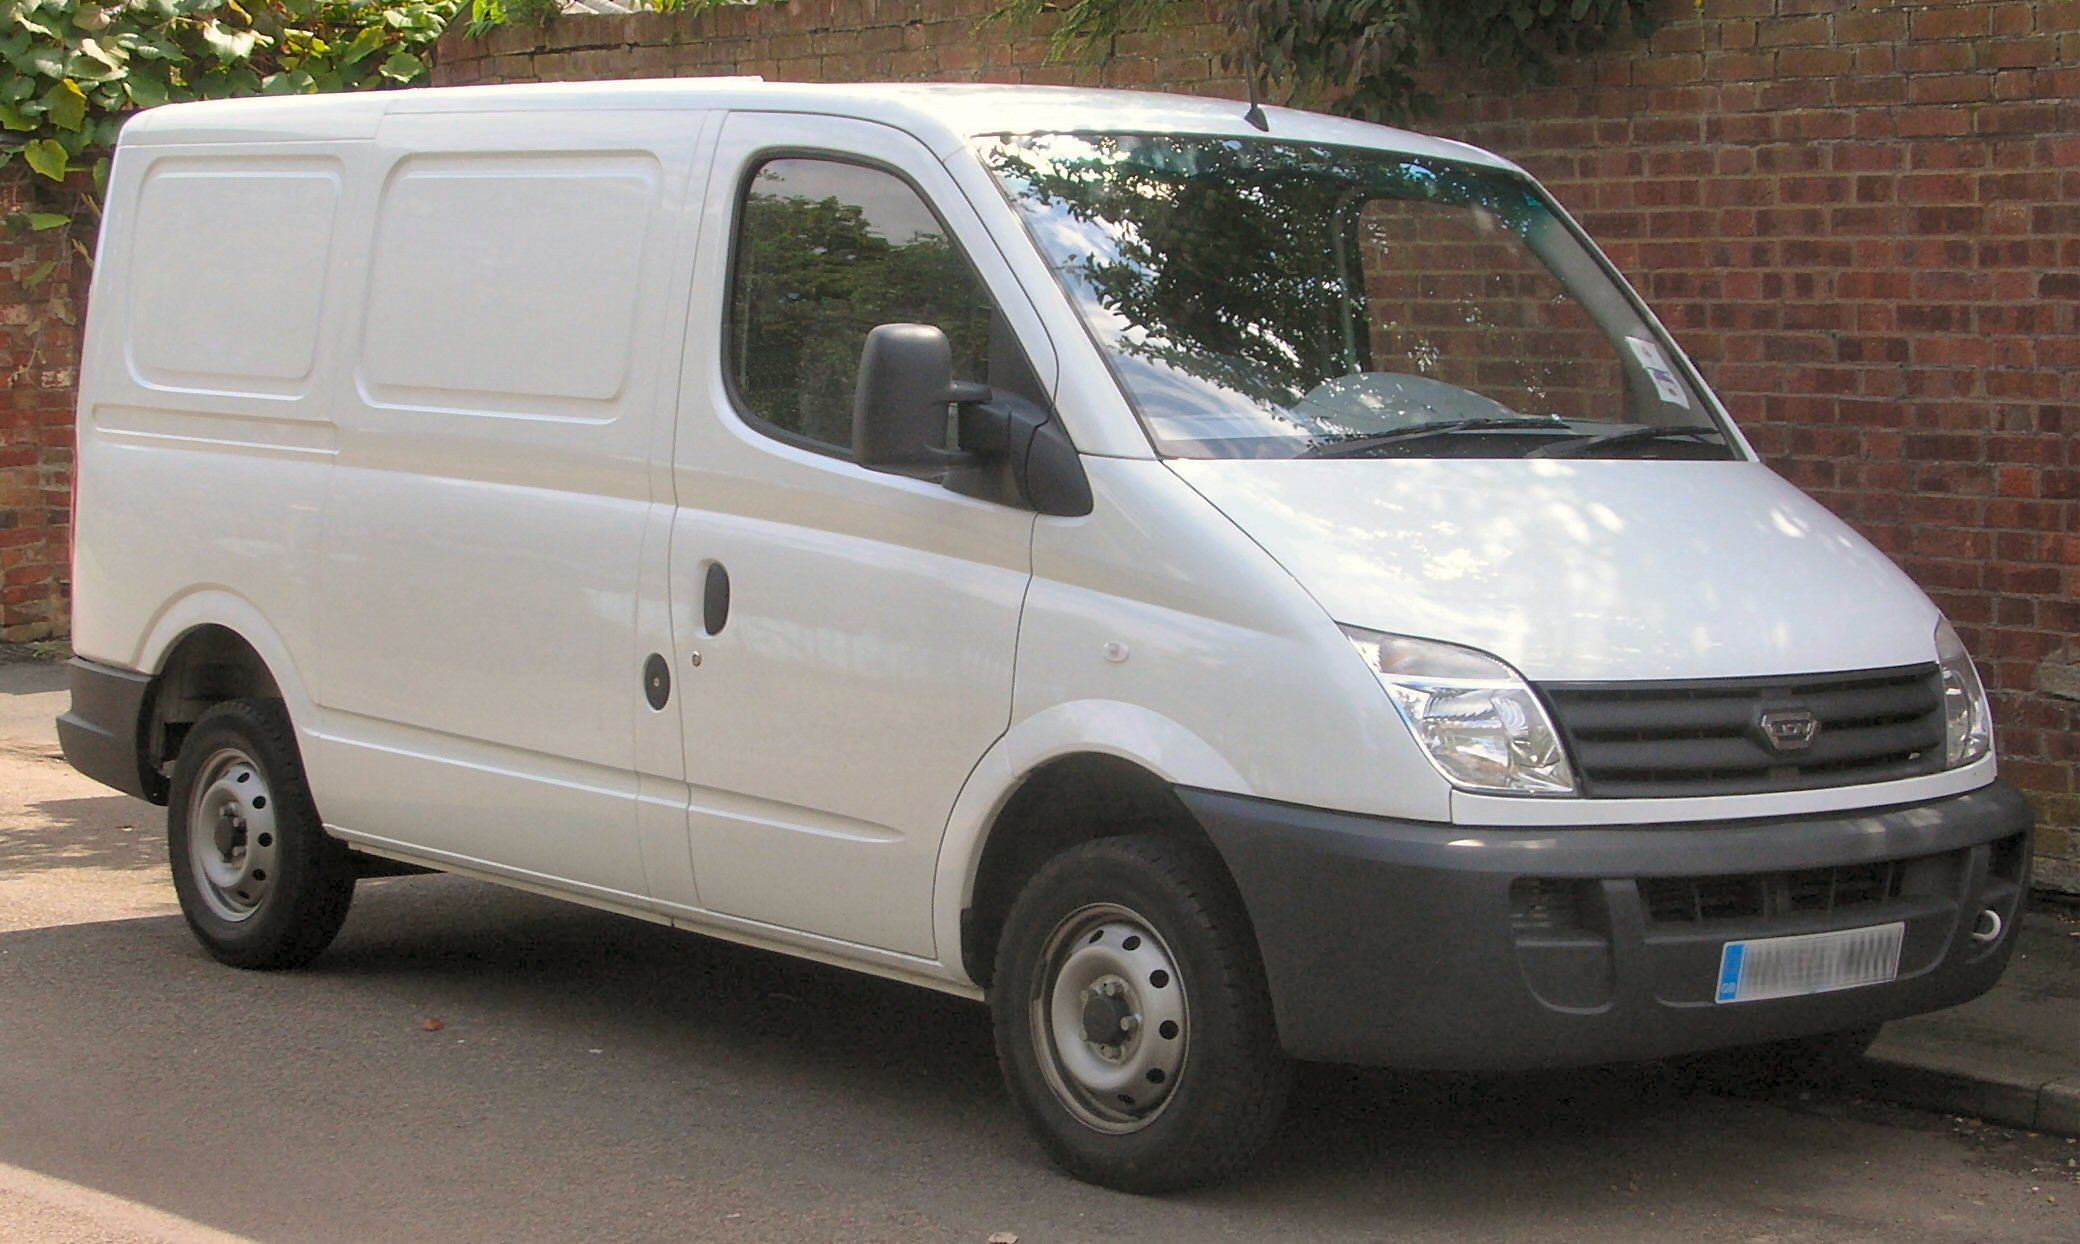 Ldv maxus photo - 1